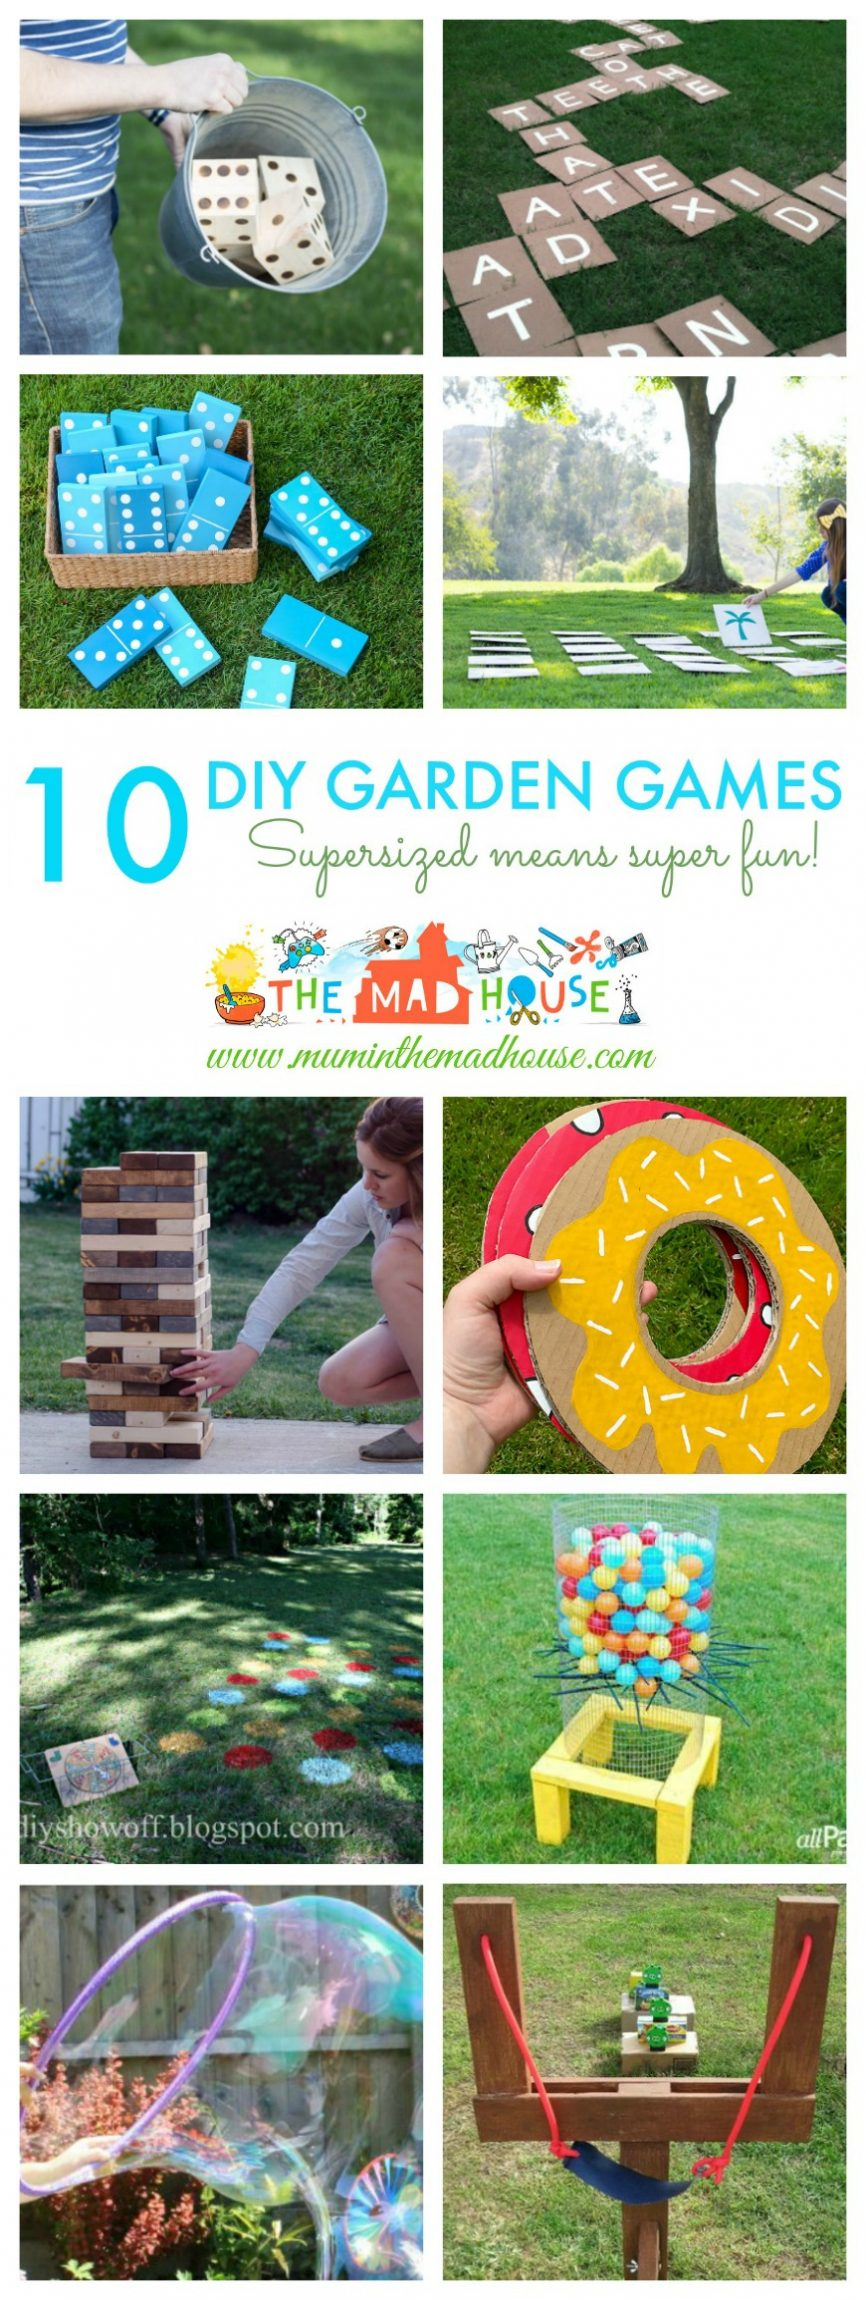 10-Giant-DIY-Garden-Games-pin-866x2300.j